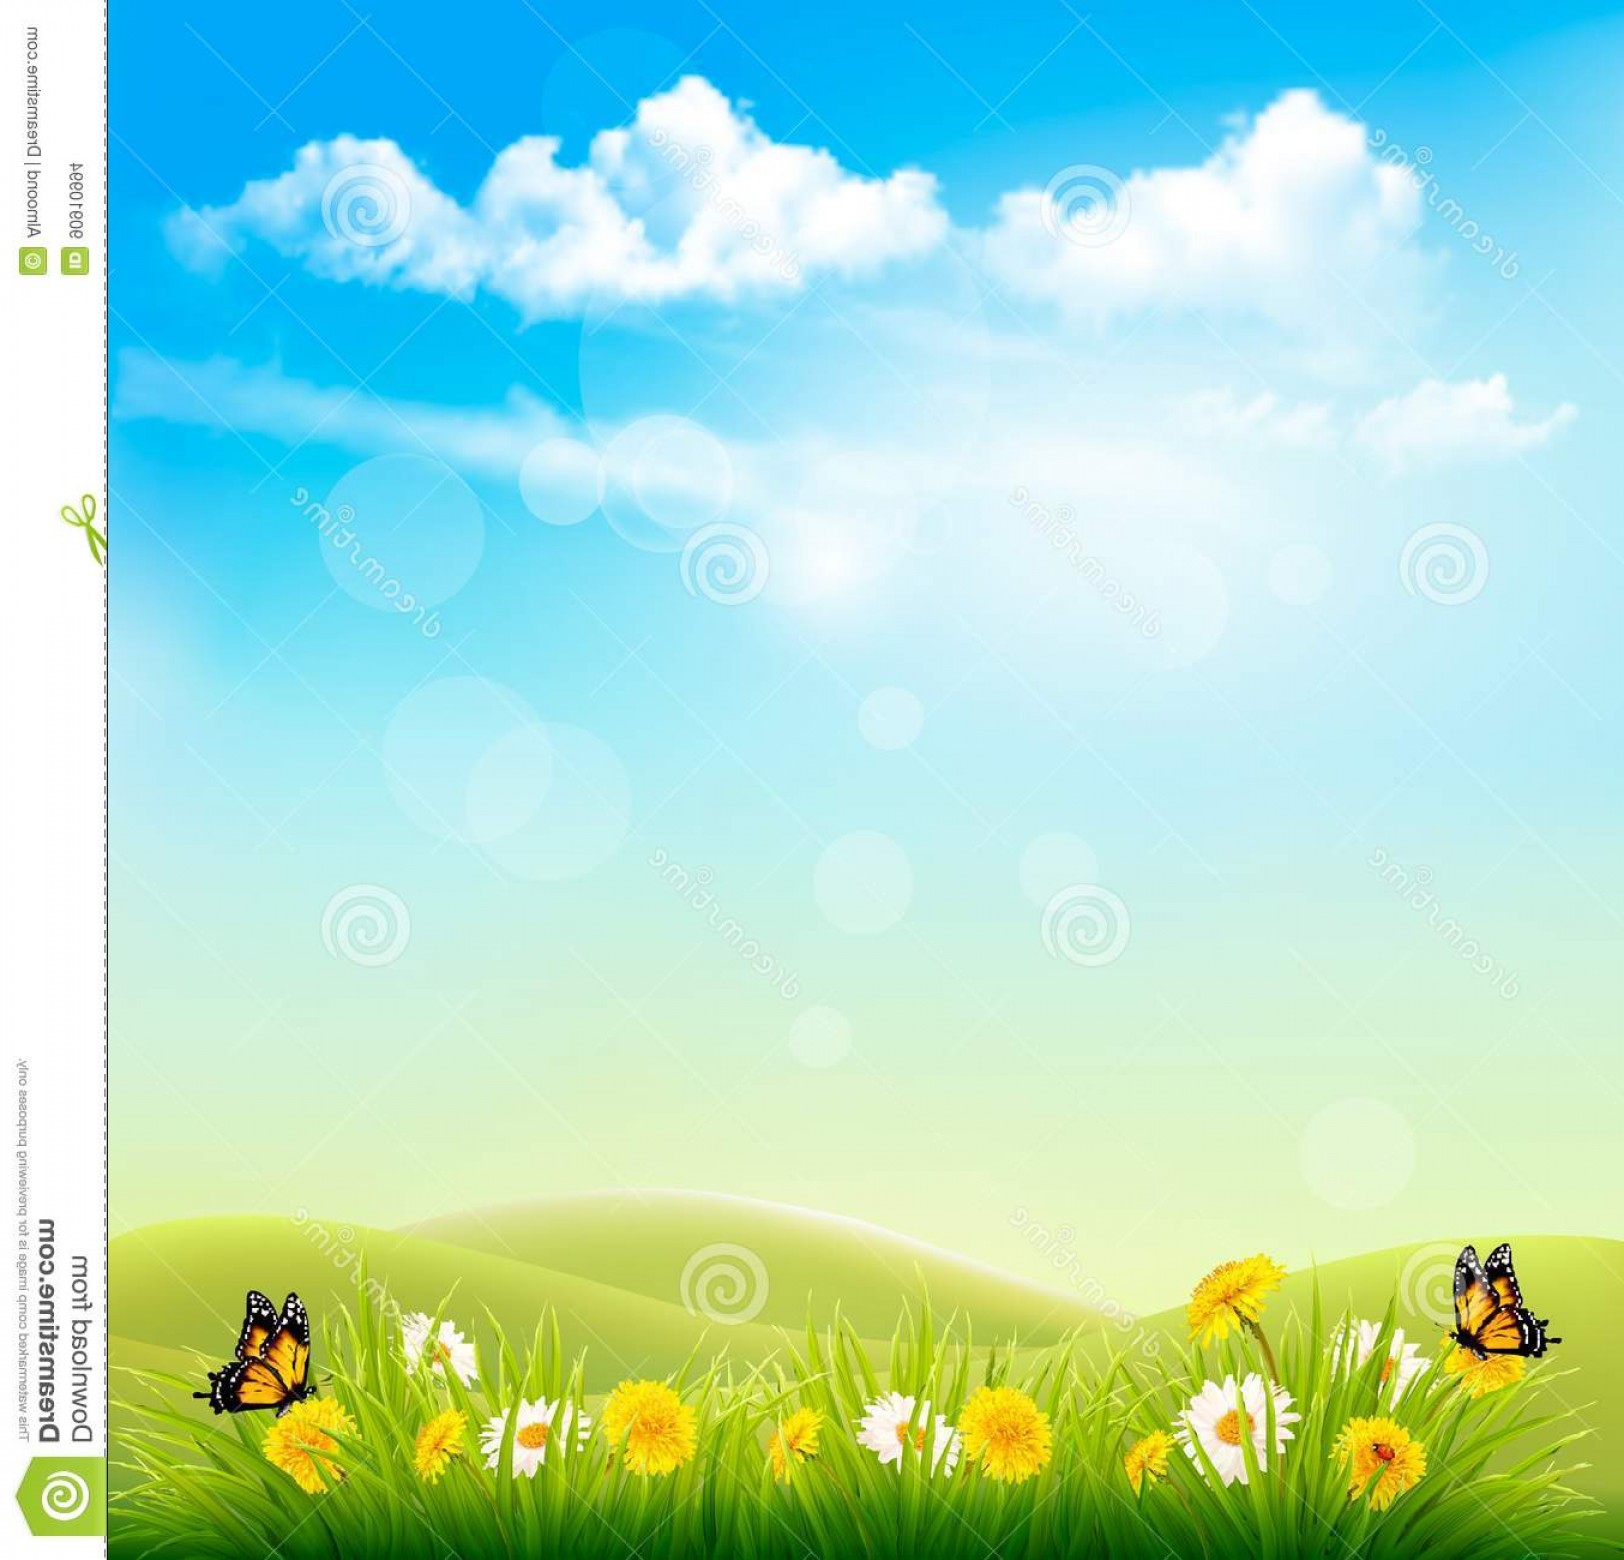 Vector Natural Background Sky: Stock Illustration Spring Nature Background Green Grass Blue Sky Clouds Vector Image